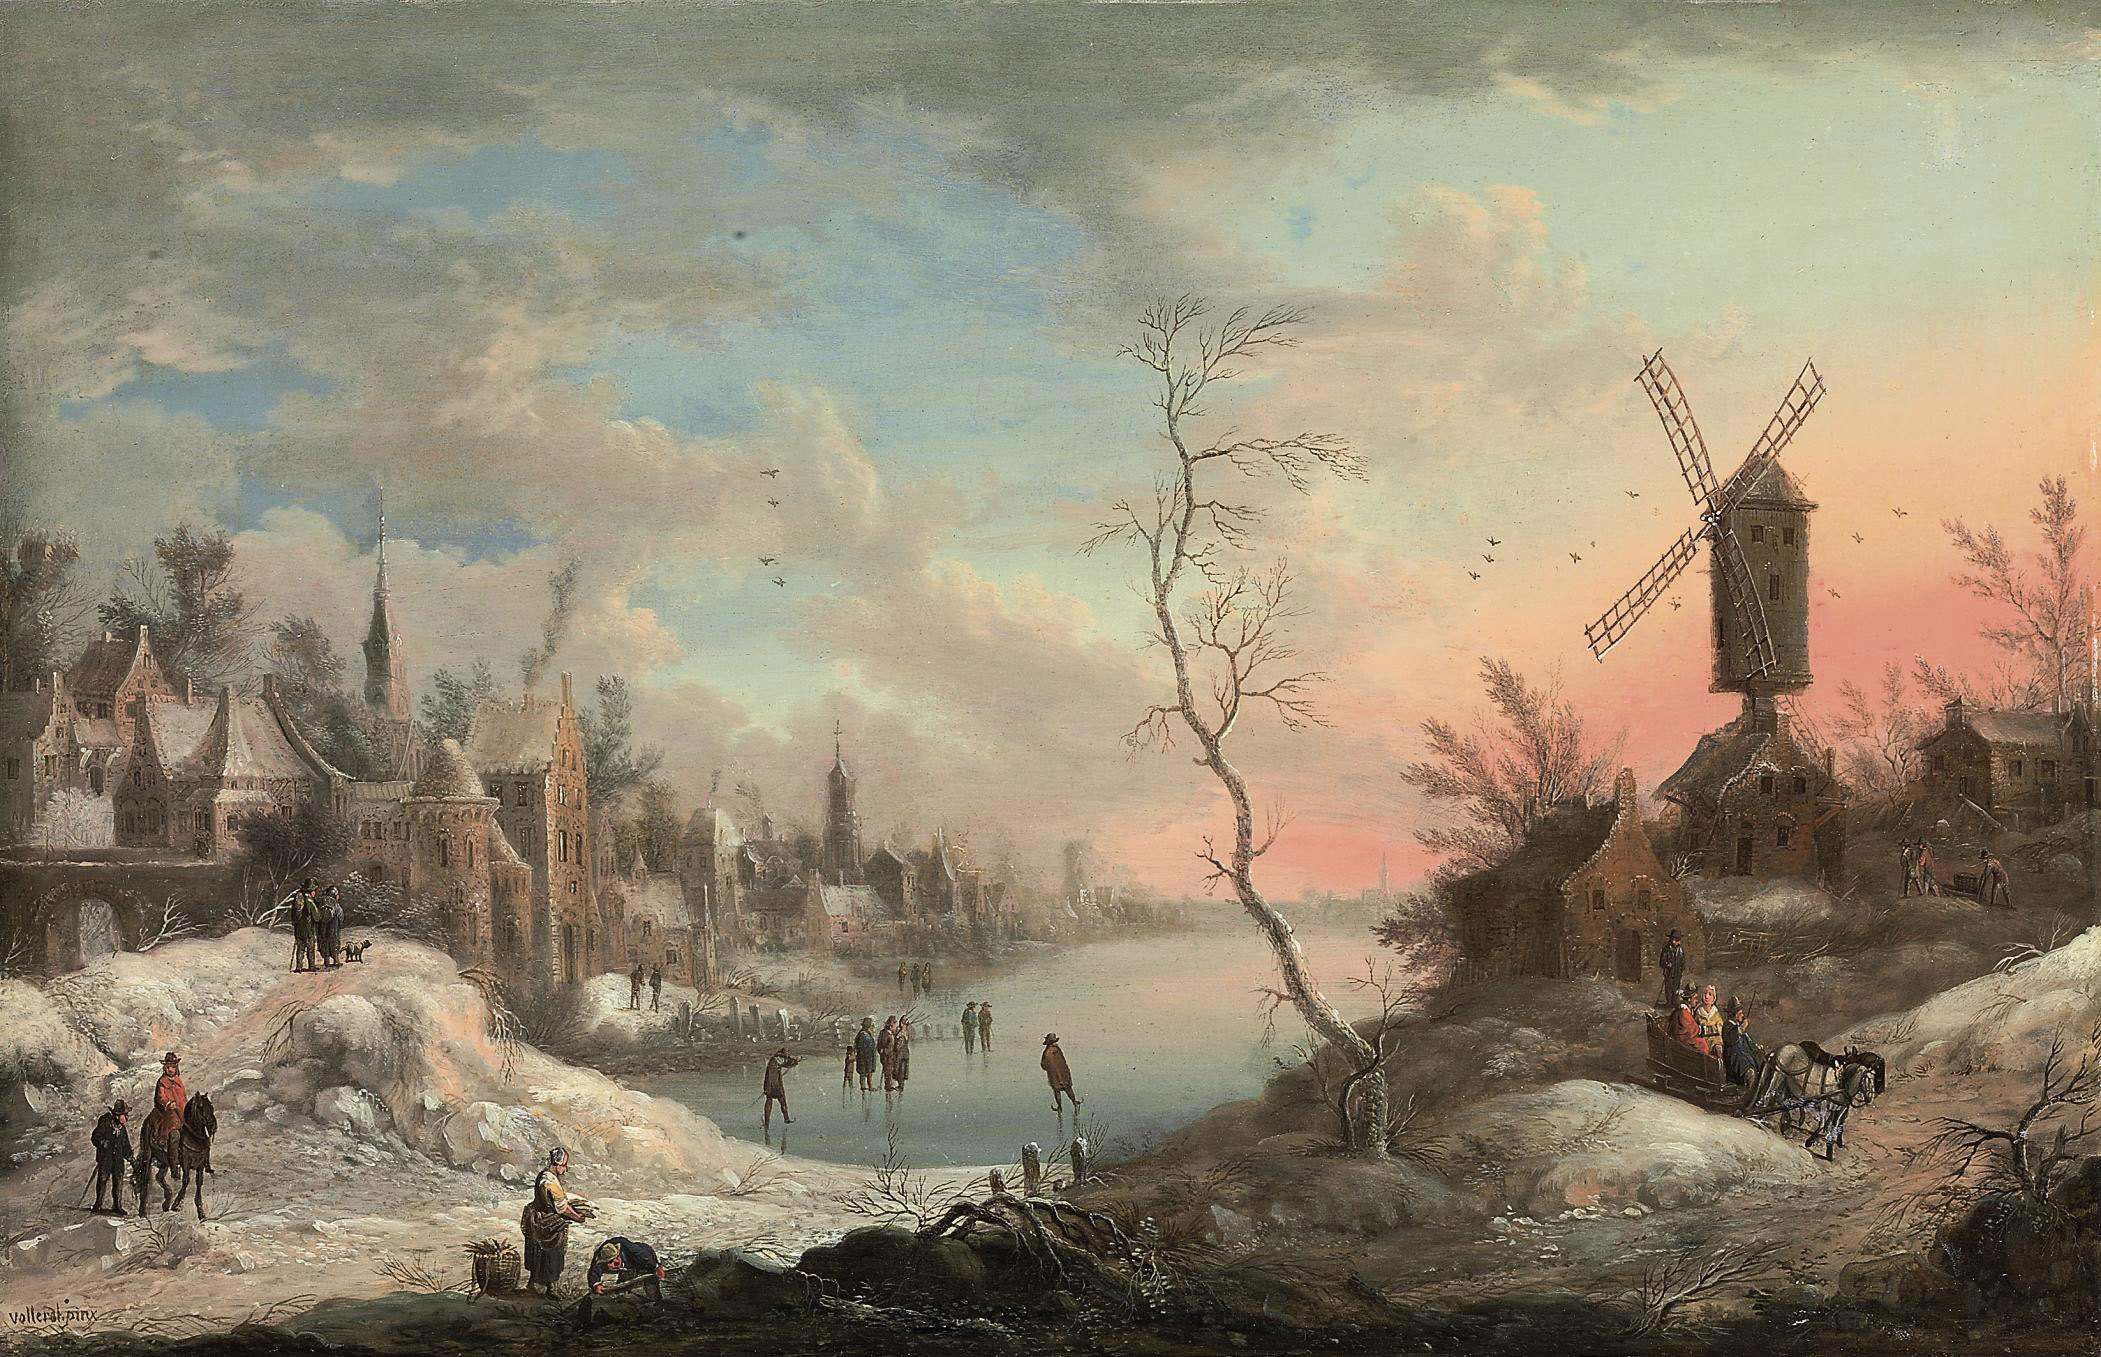 A winter landscape with skaters on a frozen lake near a town, a windmill nearby